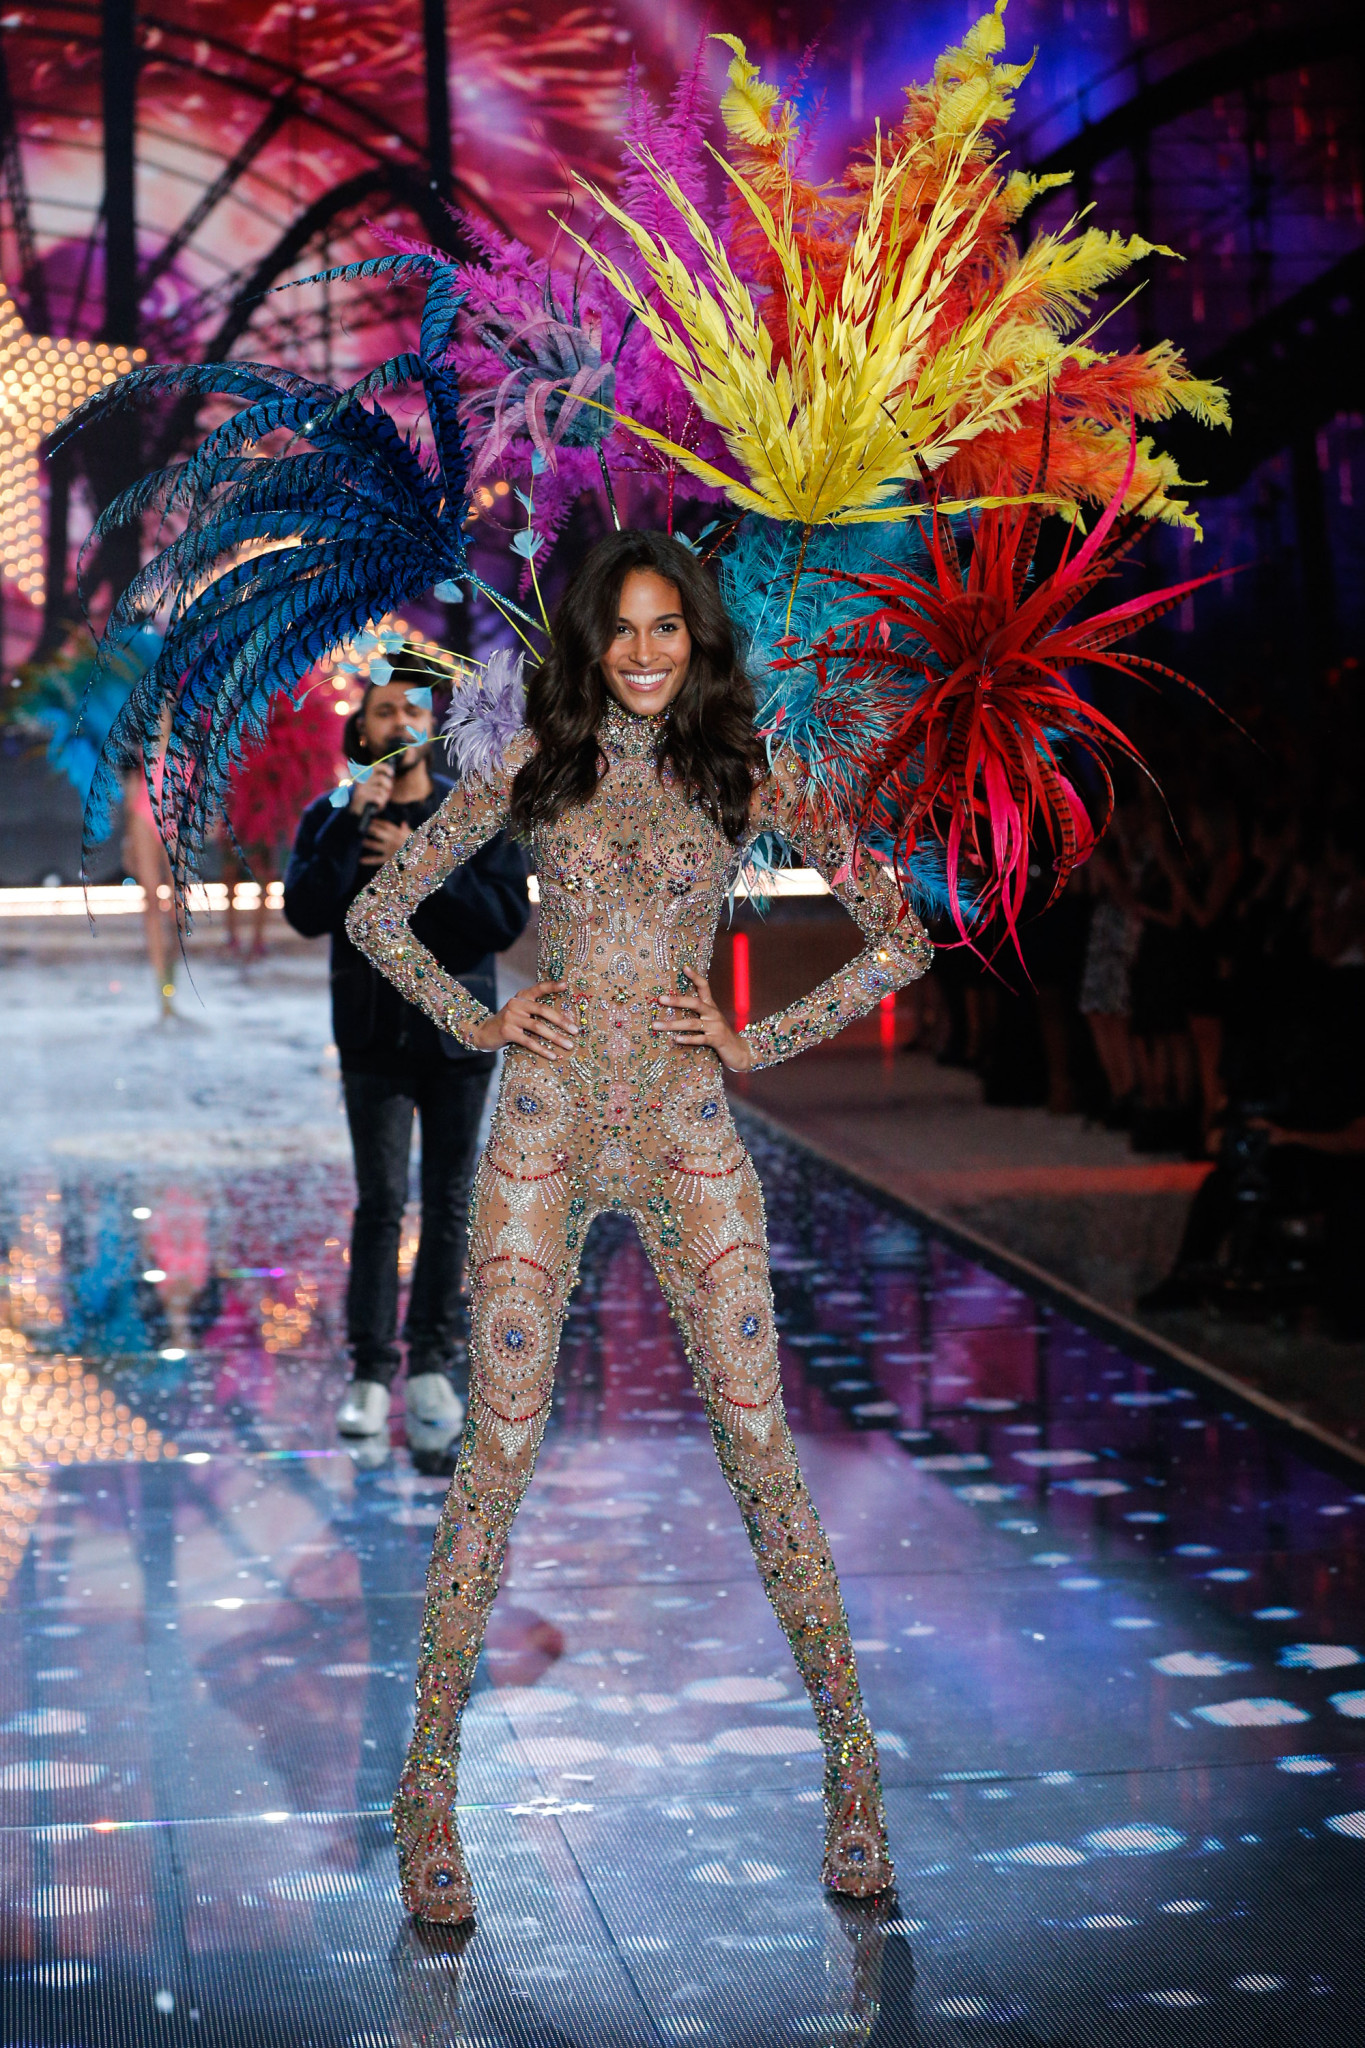 Cindy Bruna walks the runway at the 2015 Victoria's Secret Fashion Show in New York City on November 10th, 2015